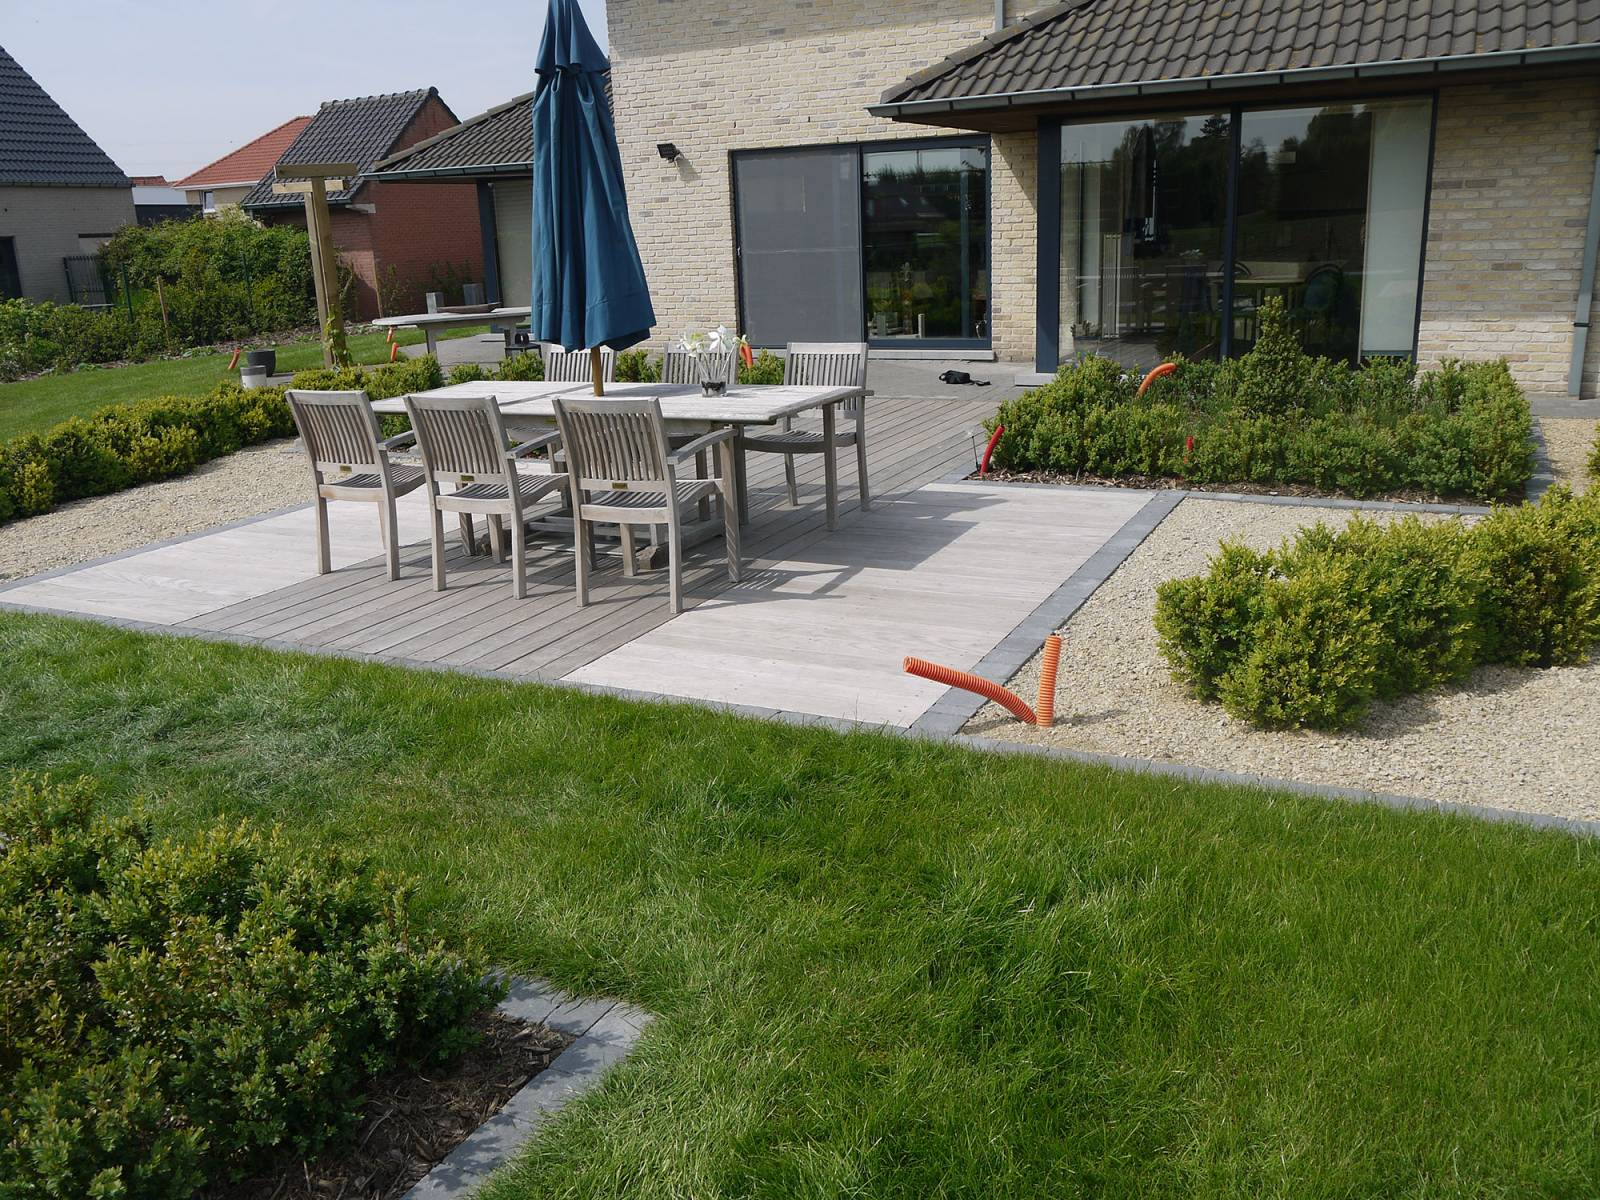 Mike roetynck 7 menen - Claustra ontwerp pour terras ...